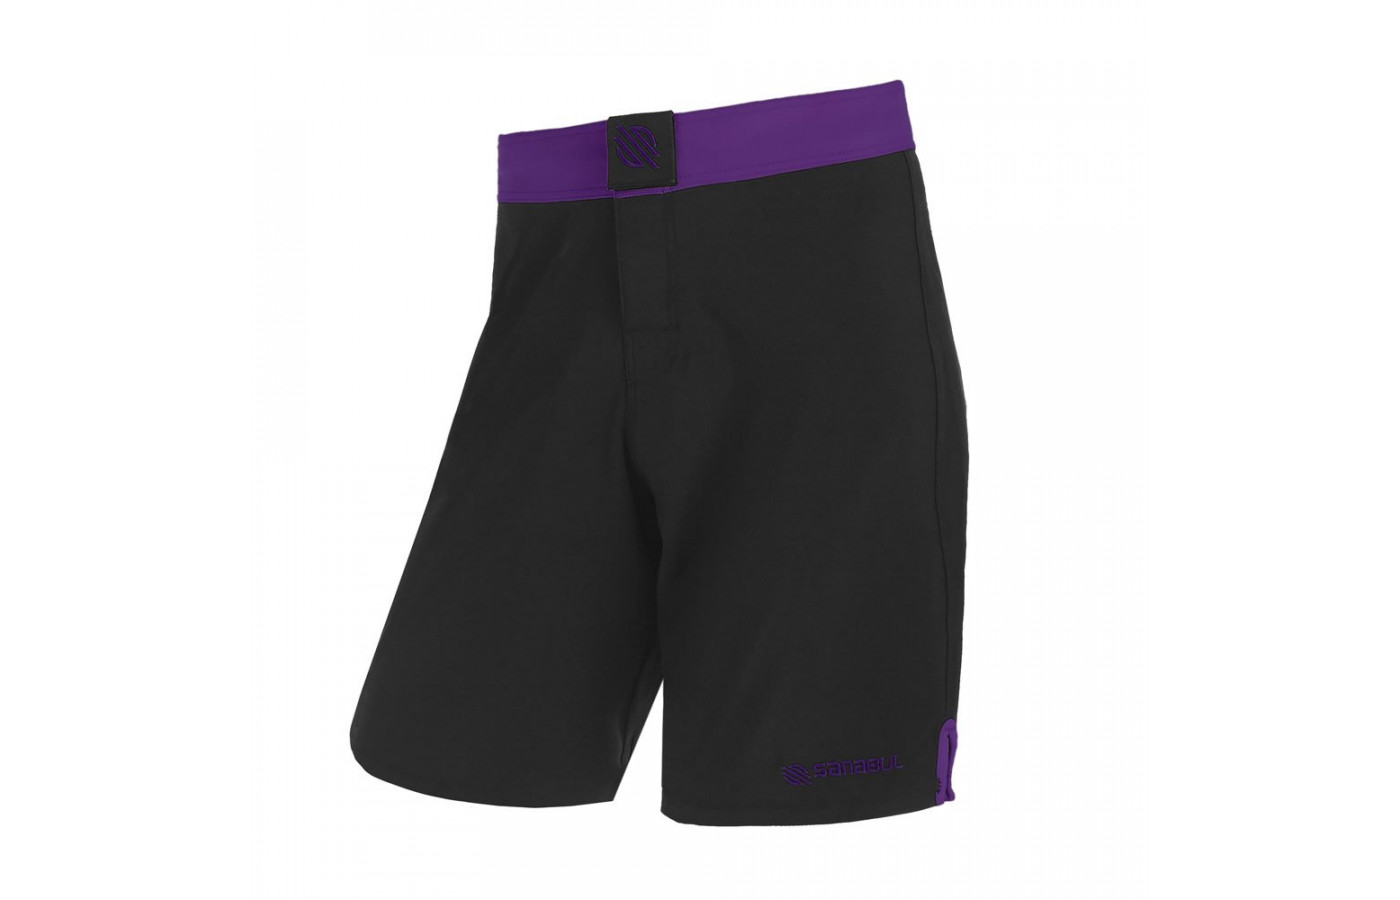 sanabul trunks purple